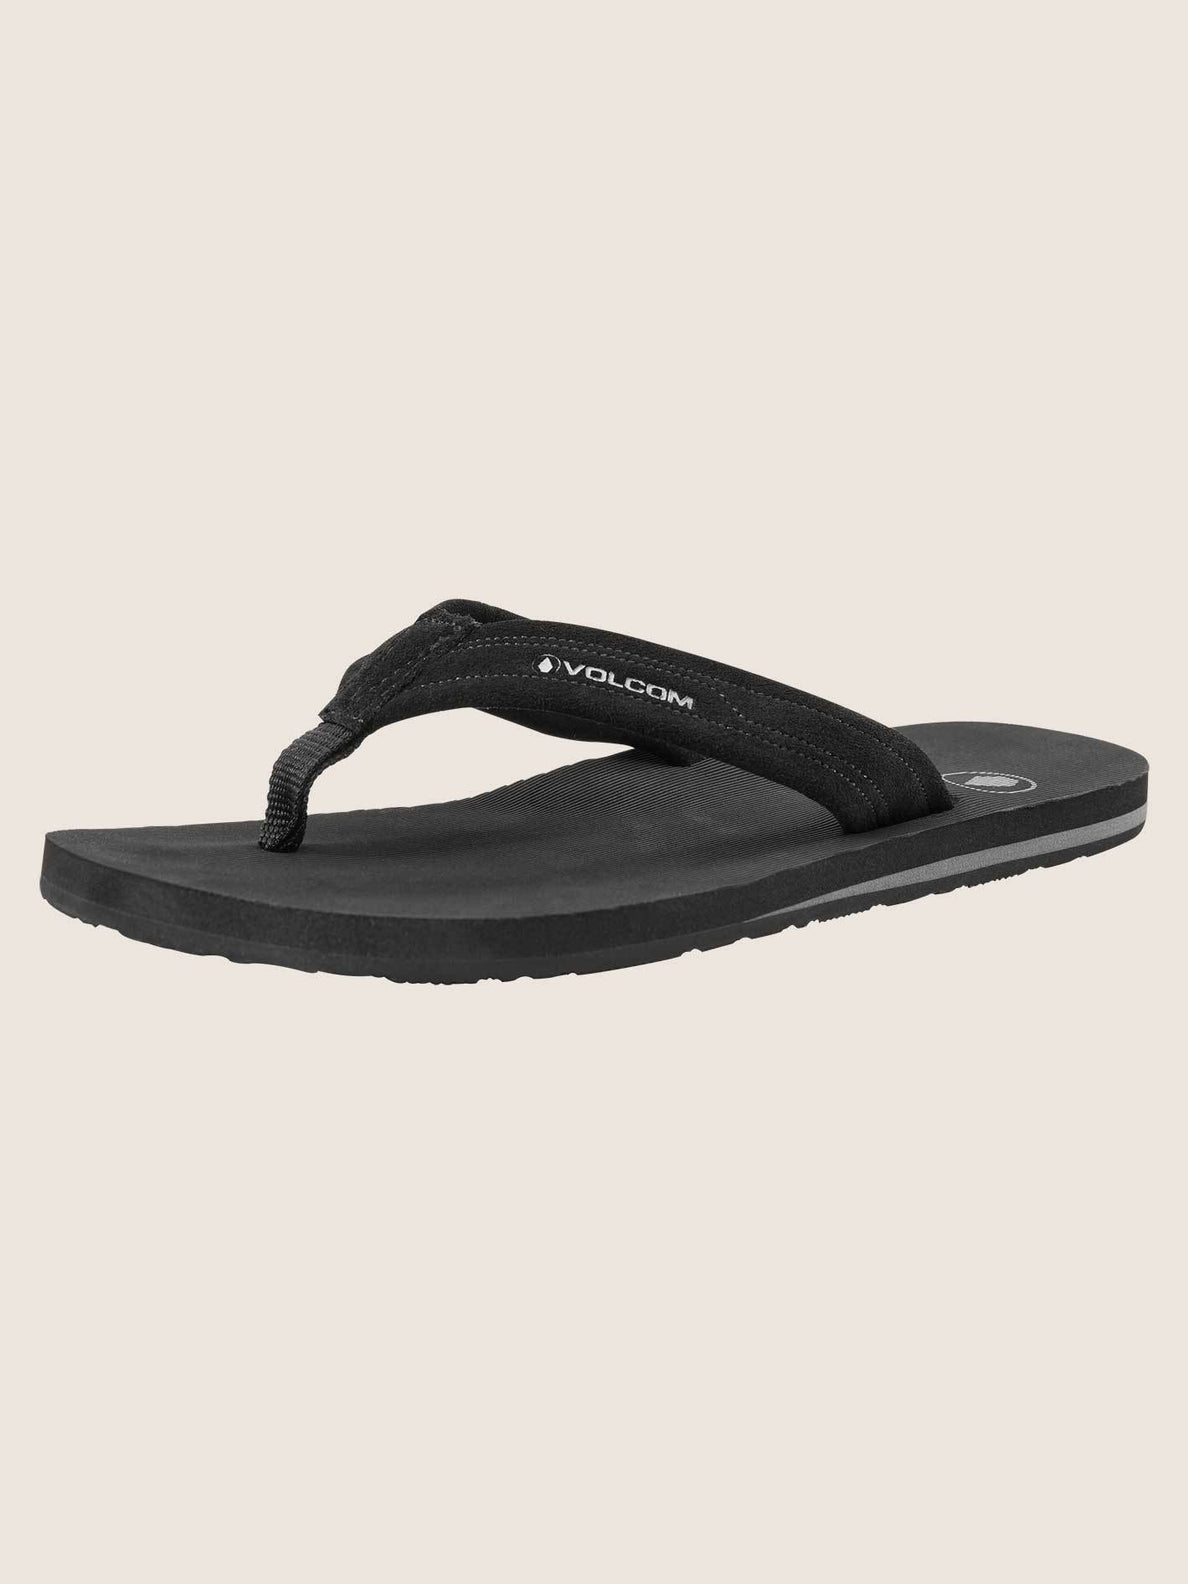 Driftin Leather Sandals In Black, Back View